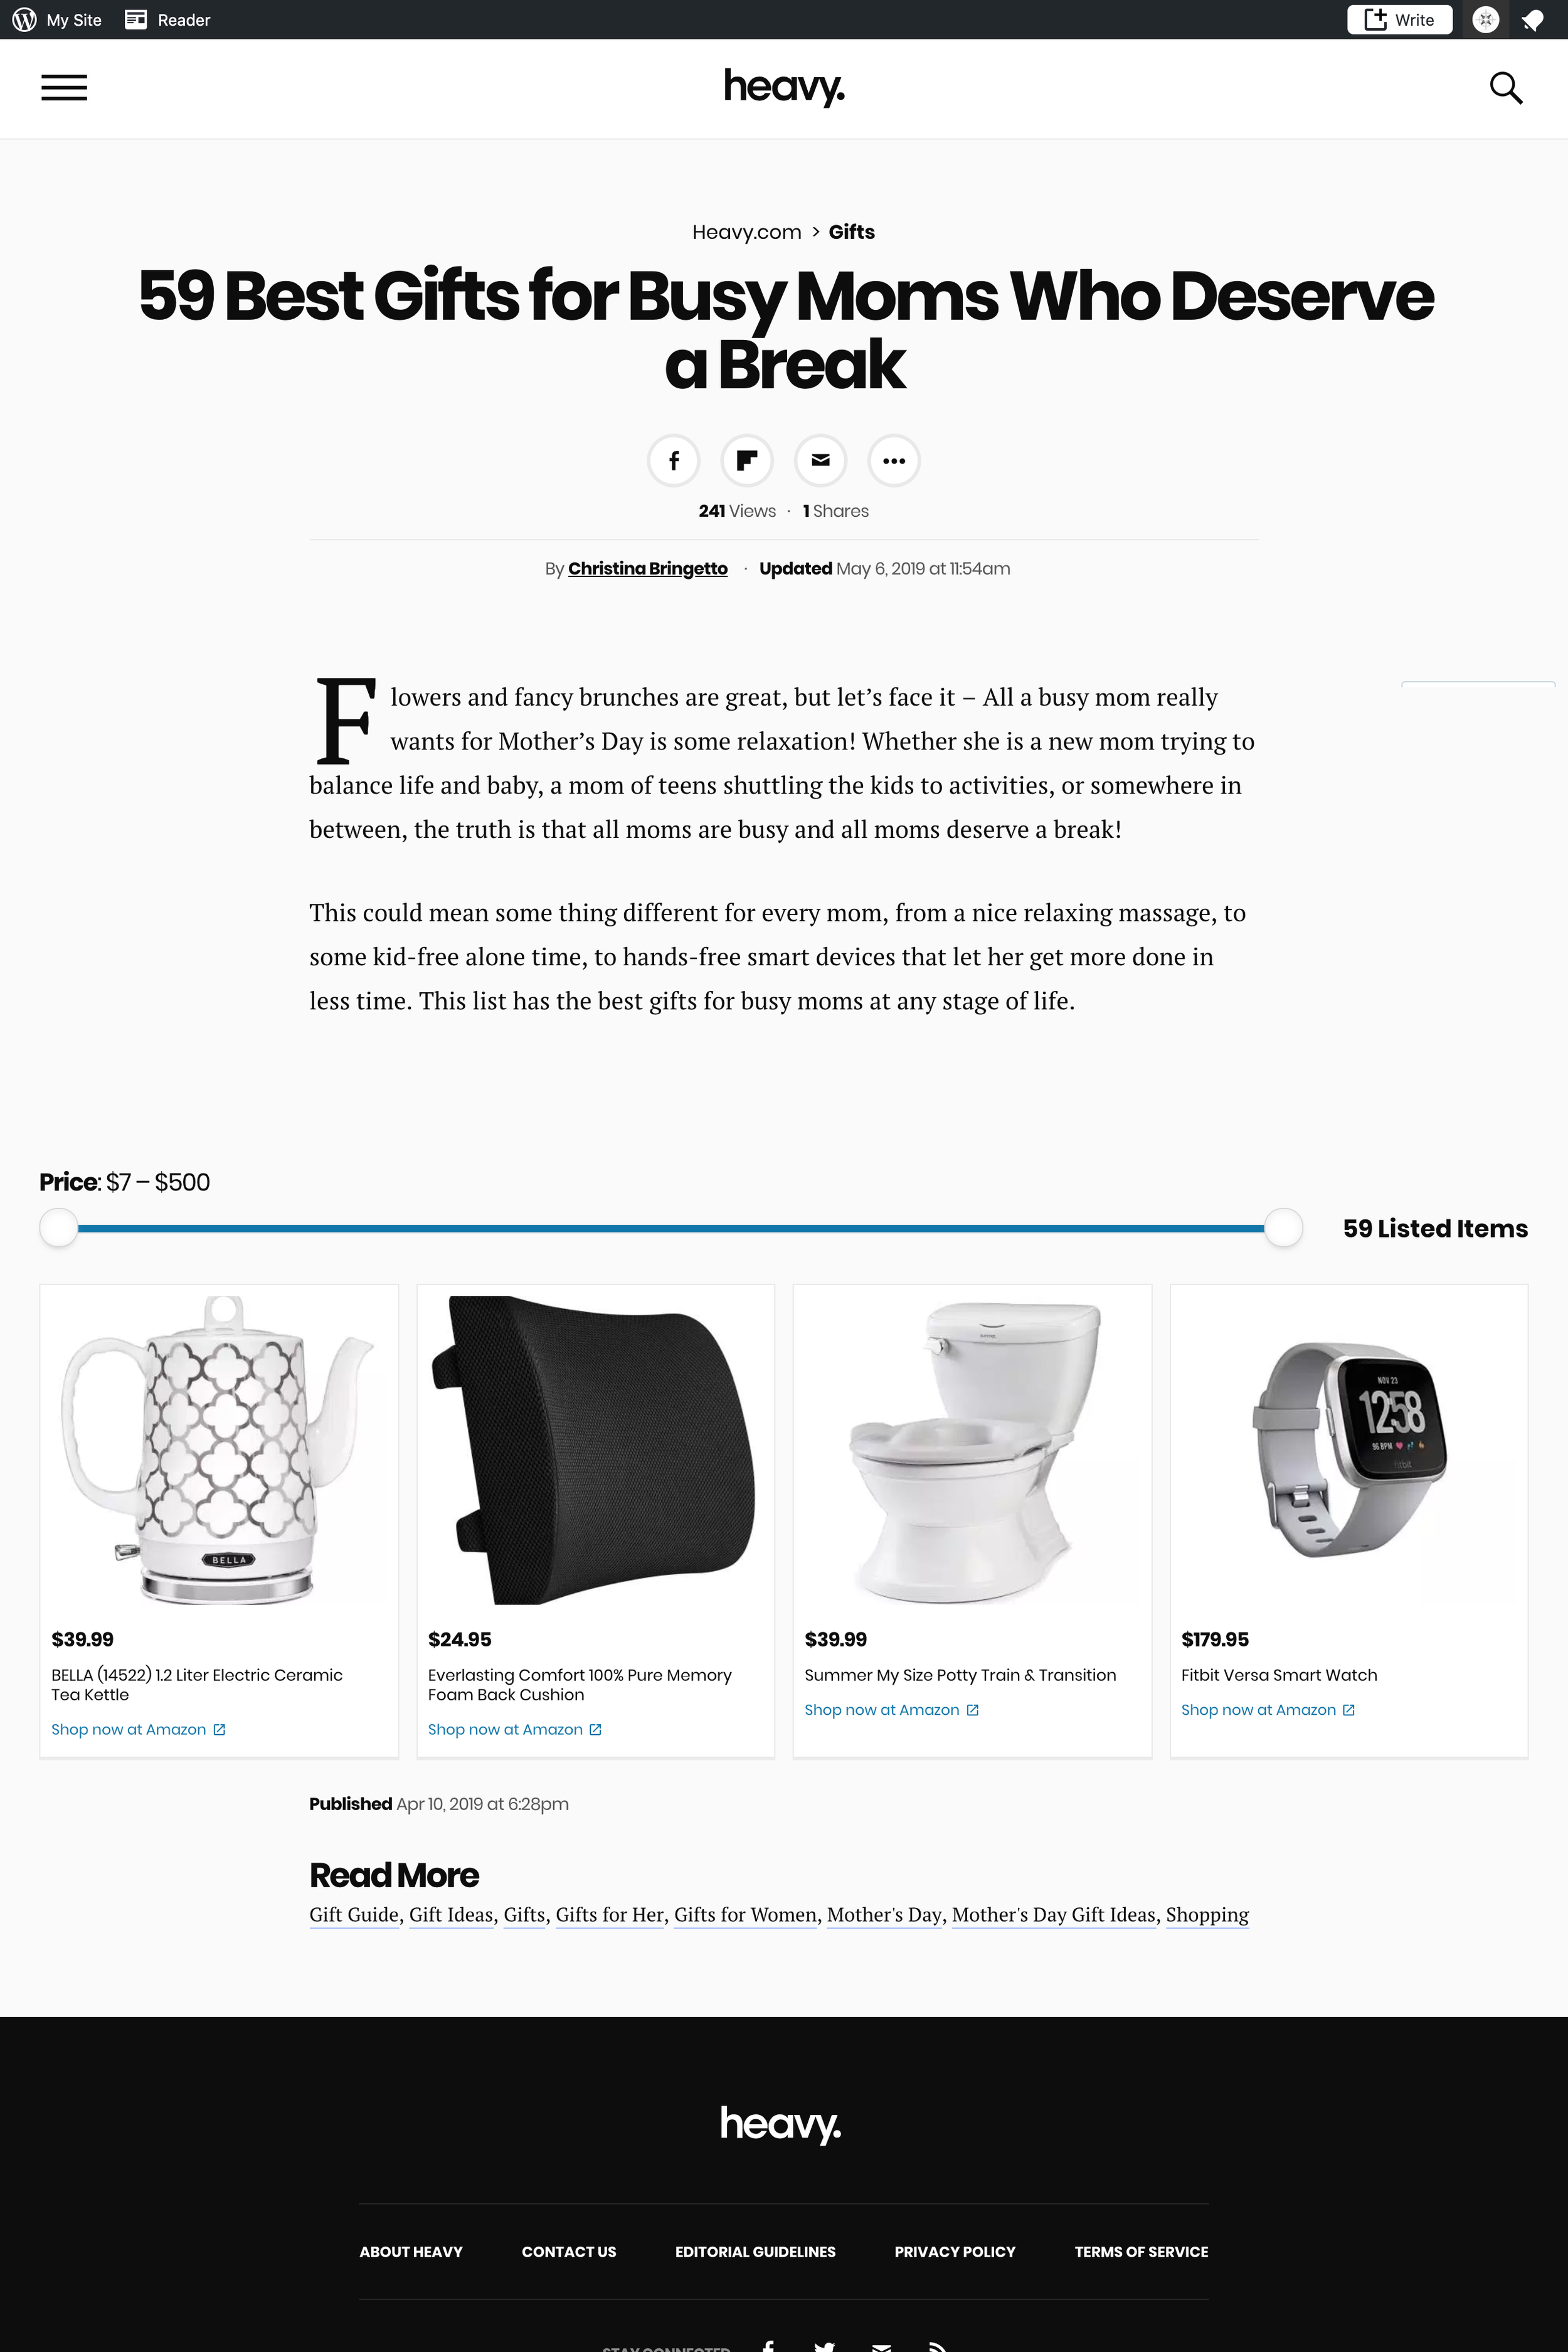 2019.05.00_Heavy_Summer My Size Potty Train & Transition_Roundup 5 of 5_cropped 2x3.png